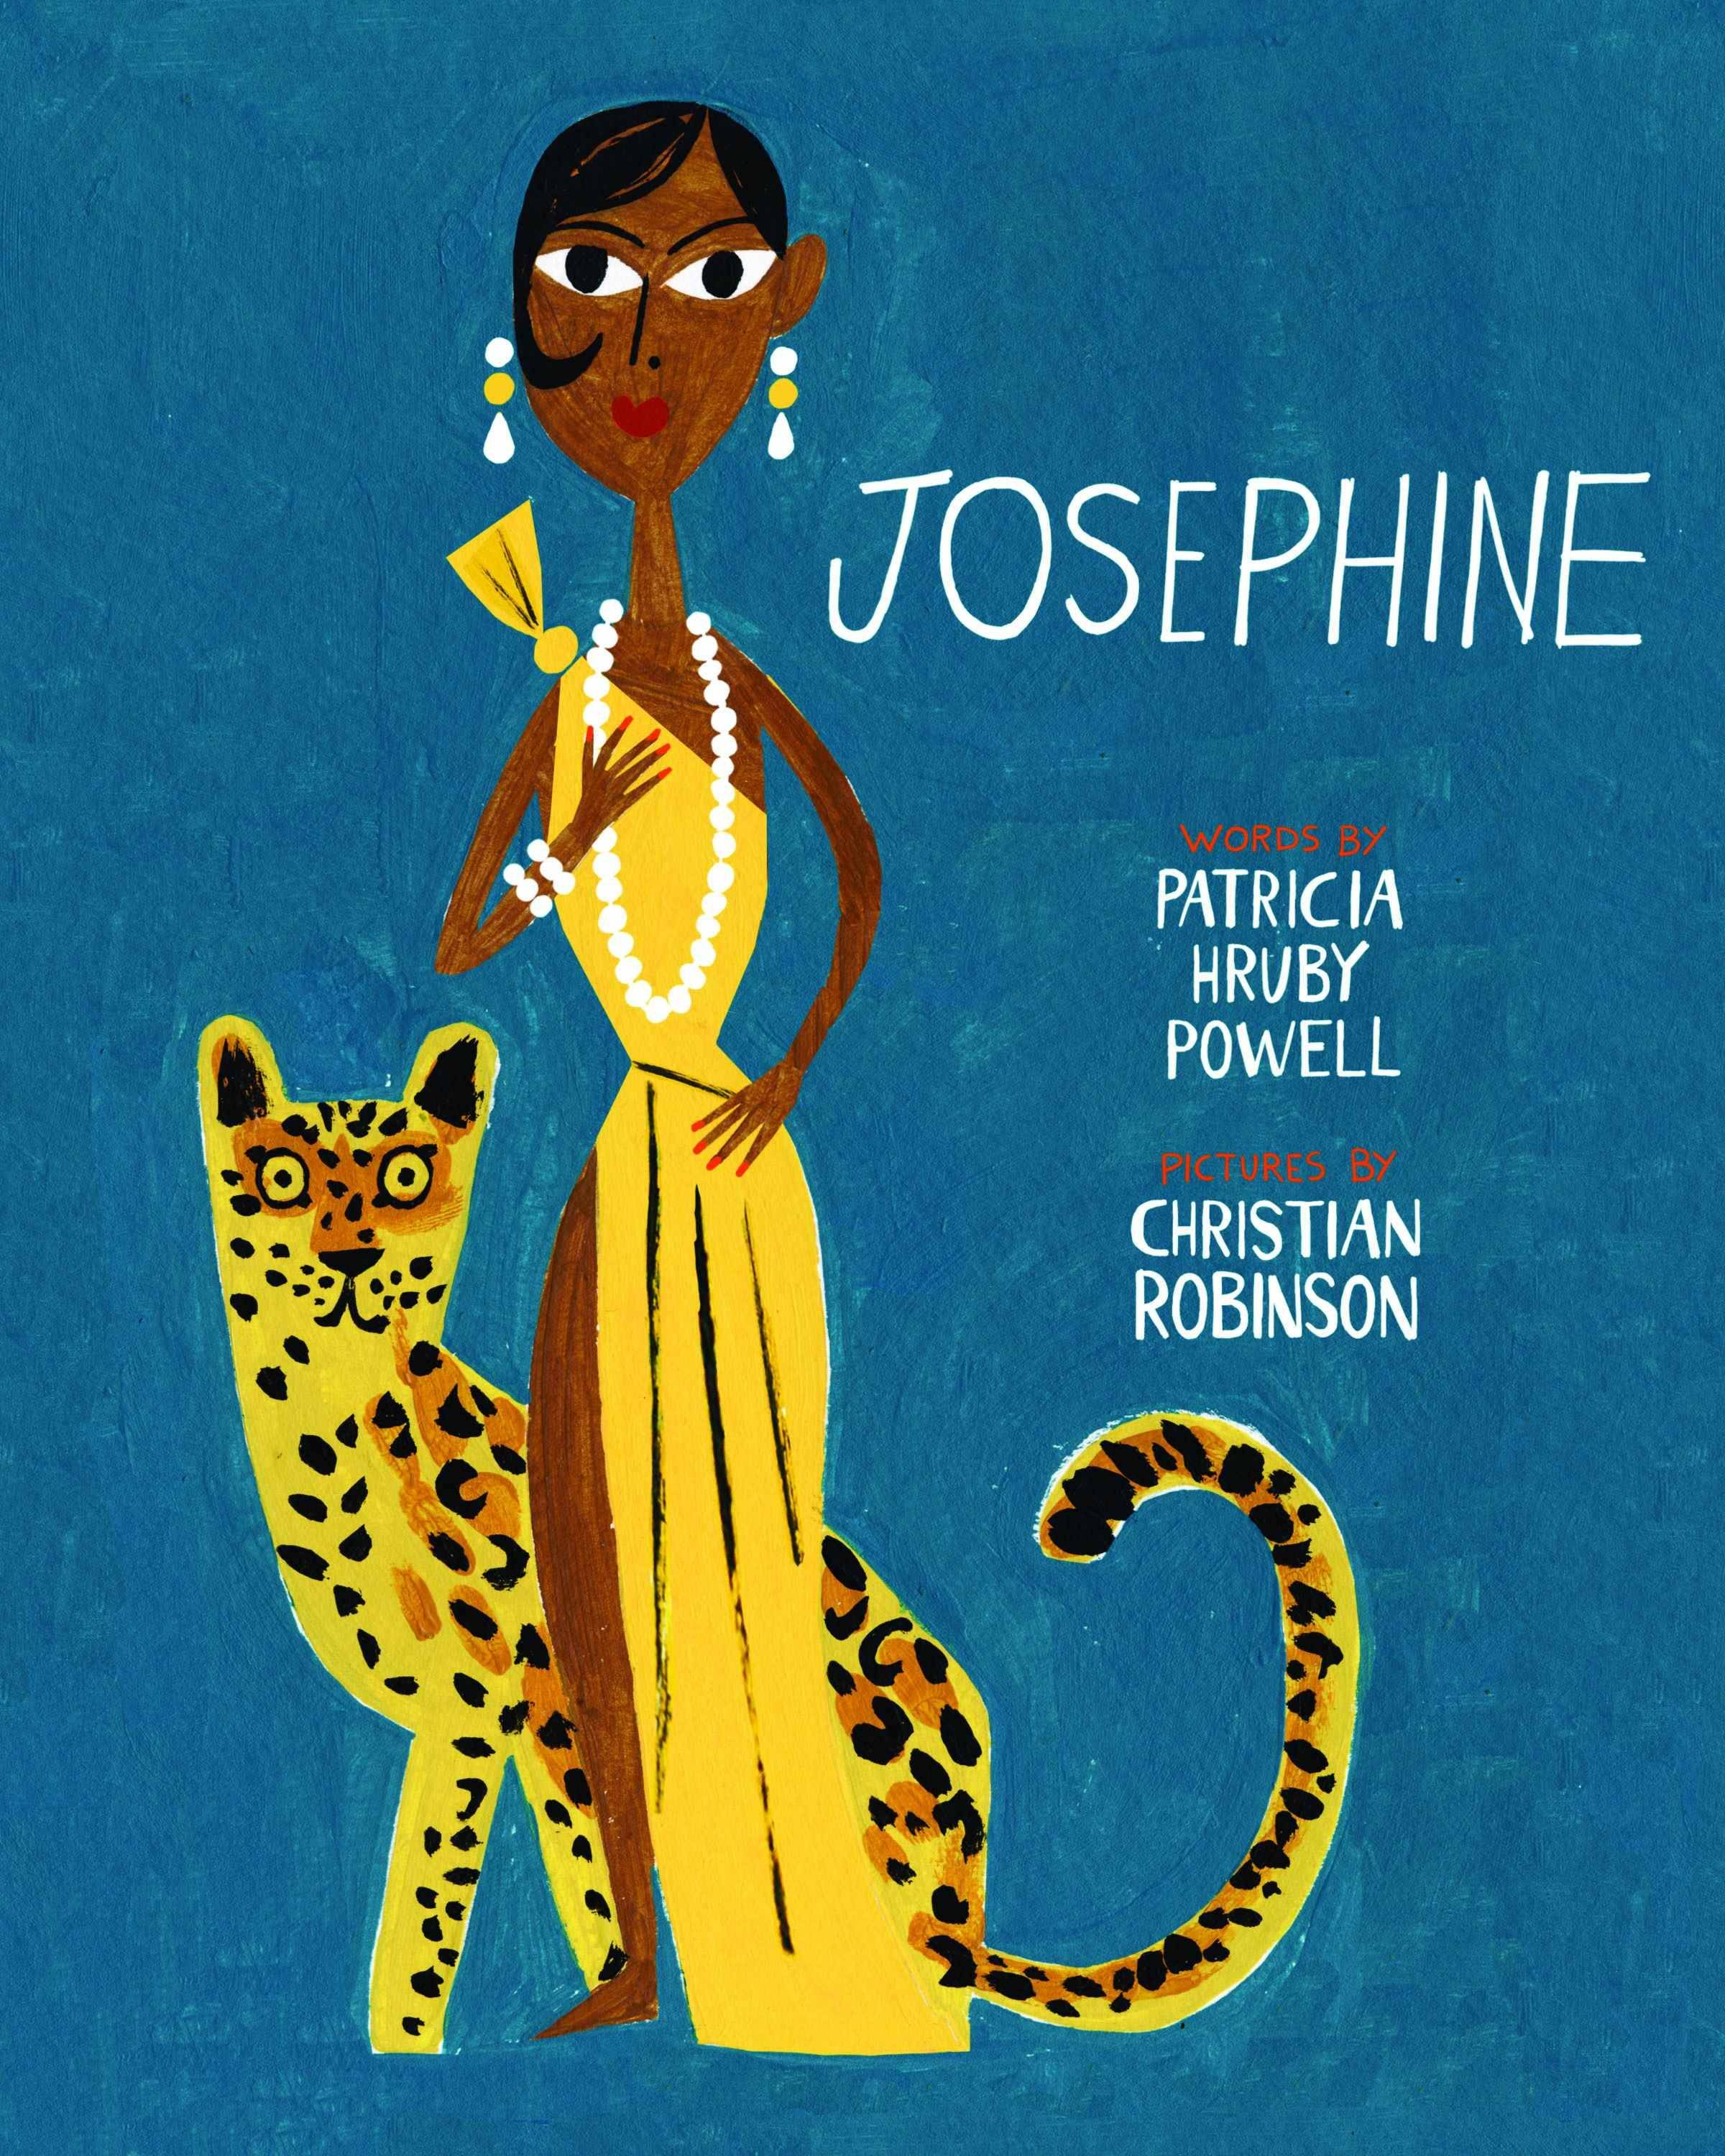 """Josephine: The Dazzling Life of Josephine Baker"" by Patricia Hruby Powell, illustrated by Christian Robinson (Chronicle Books, 2014), $17.99, 104 pages."